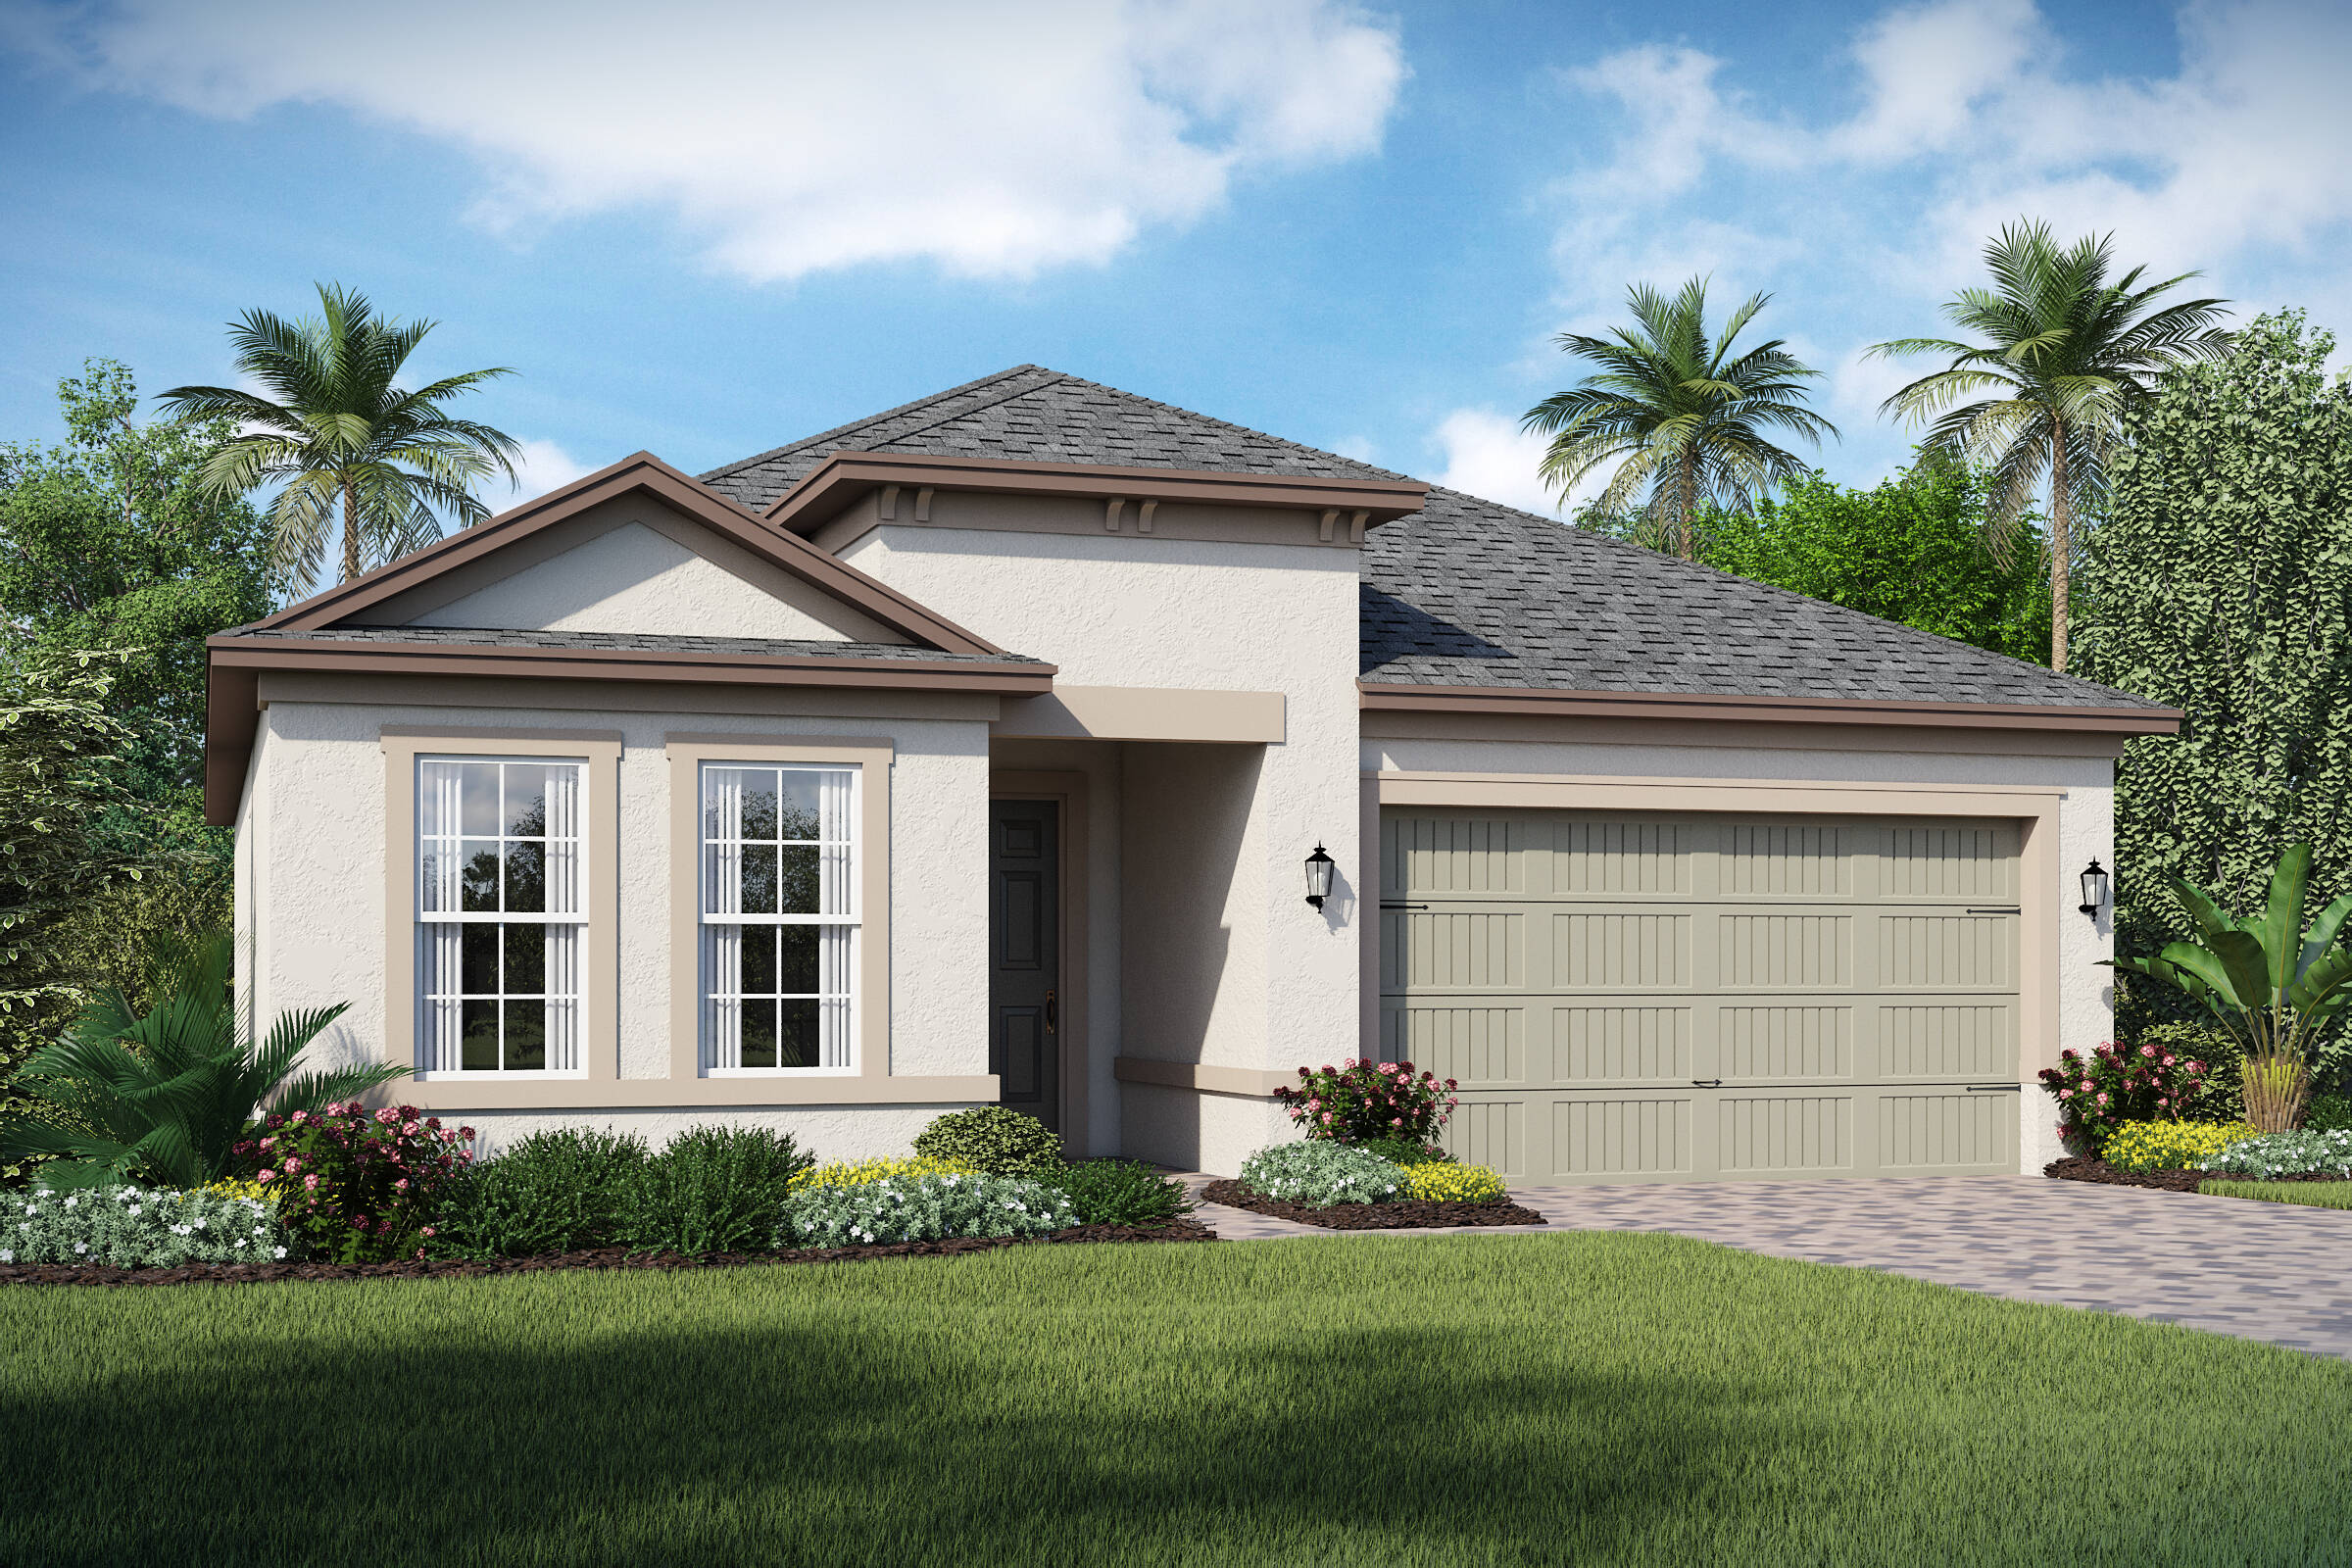 San Andres-A-elev new homes in orlando